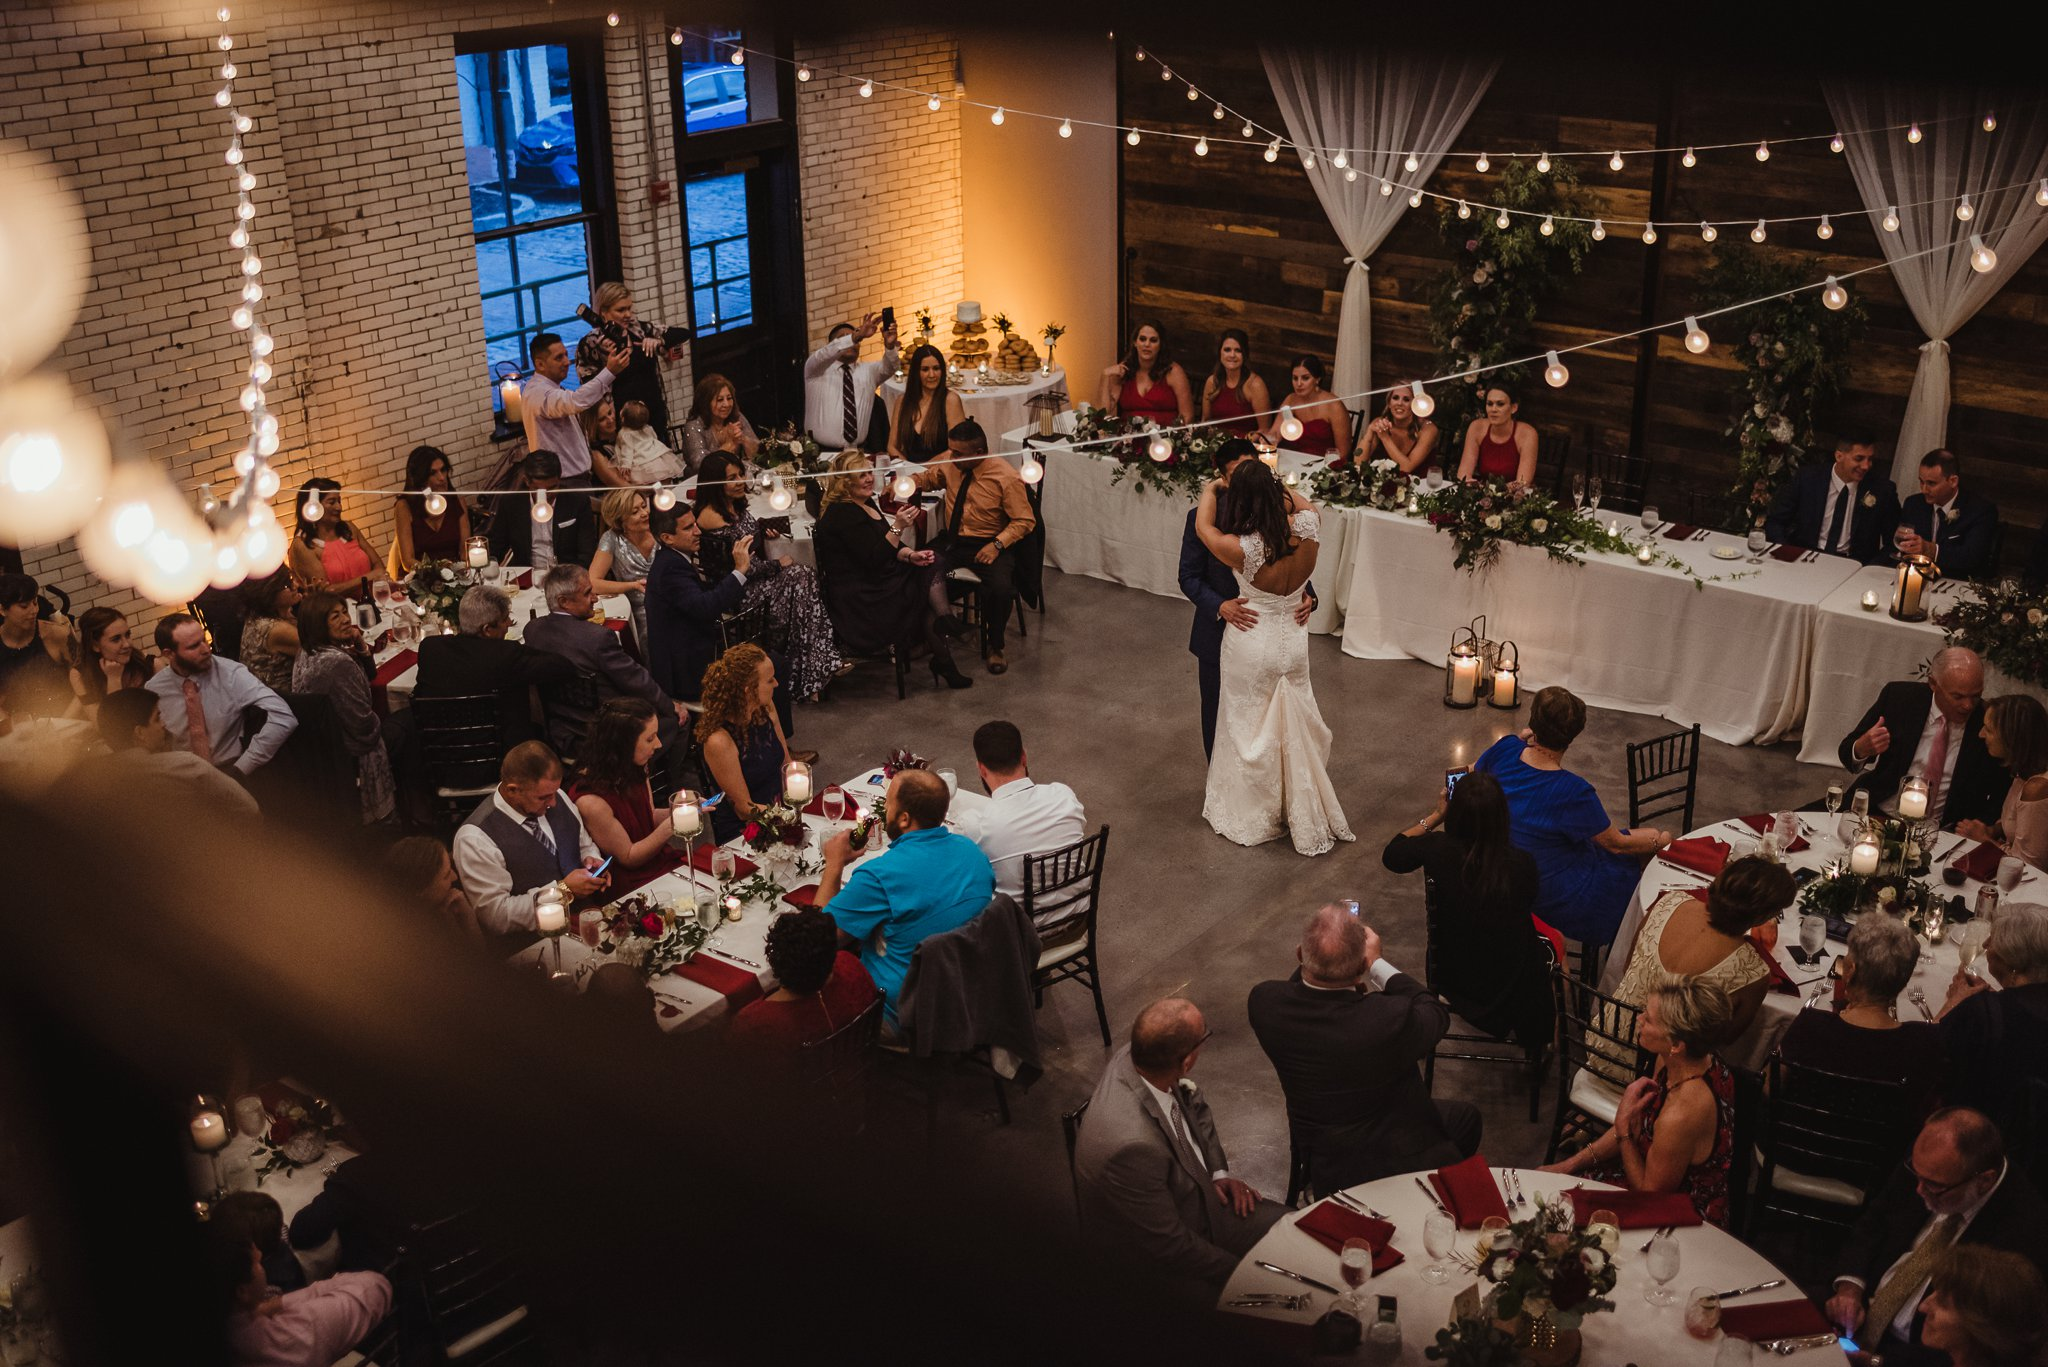 An aerial view of the bride and groom dancing their first dance together at their wedding reception at Market Hall in downtown Raleigh, photos by Rose Trail Images.